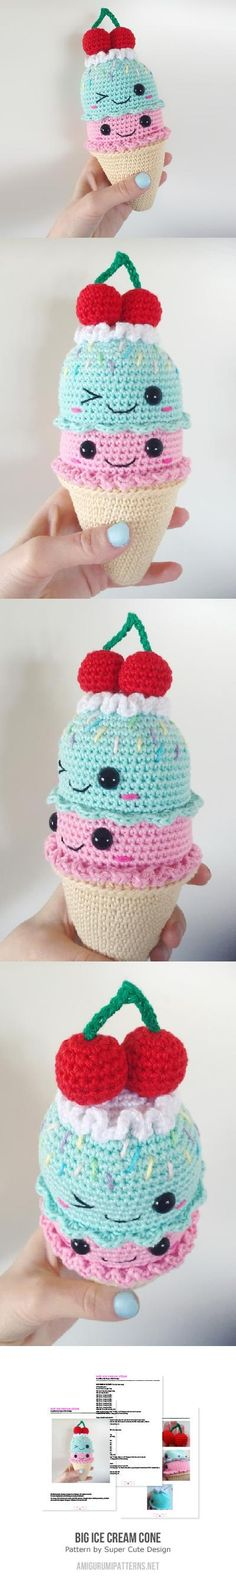 Big Ice Cream Cone amigurumi pattern by Super Cute Design